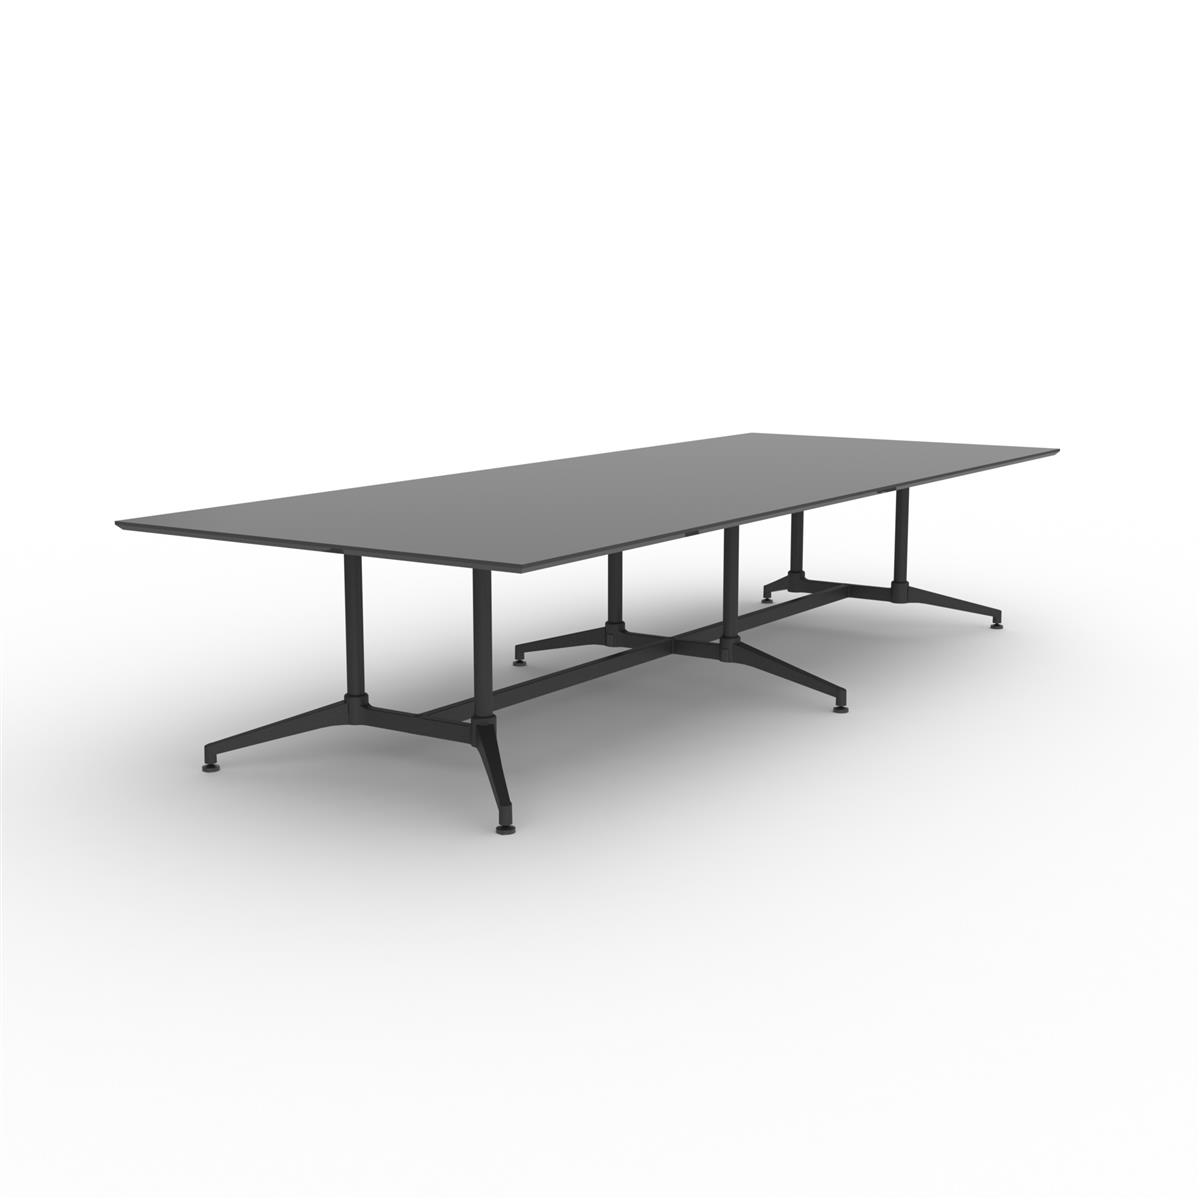 X1 Seamless Table 360 x 140 - sort linoleum & sort